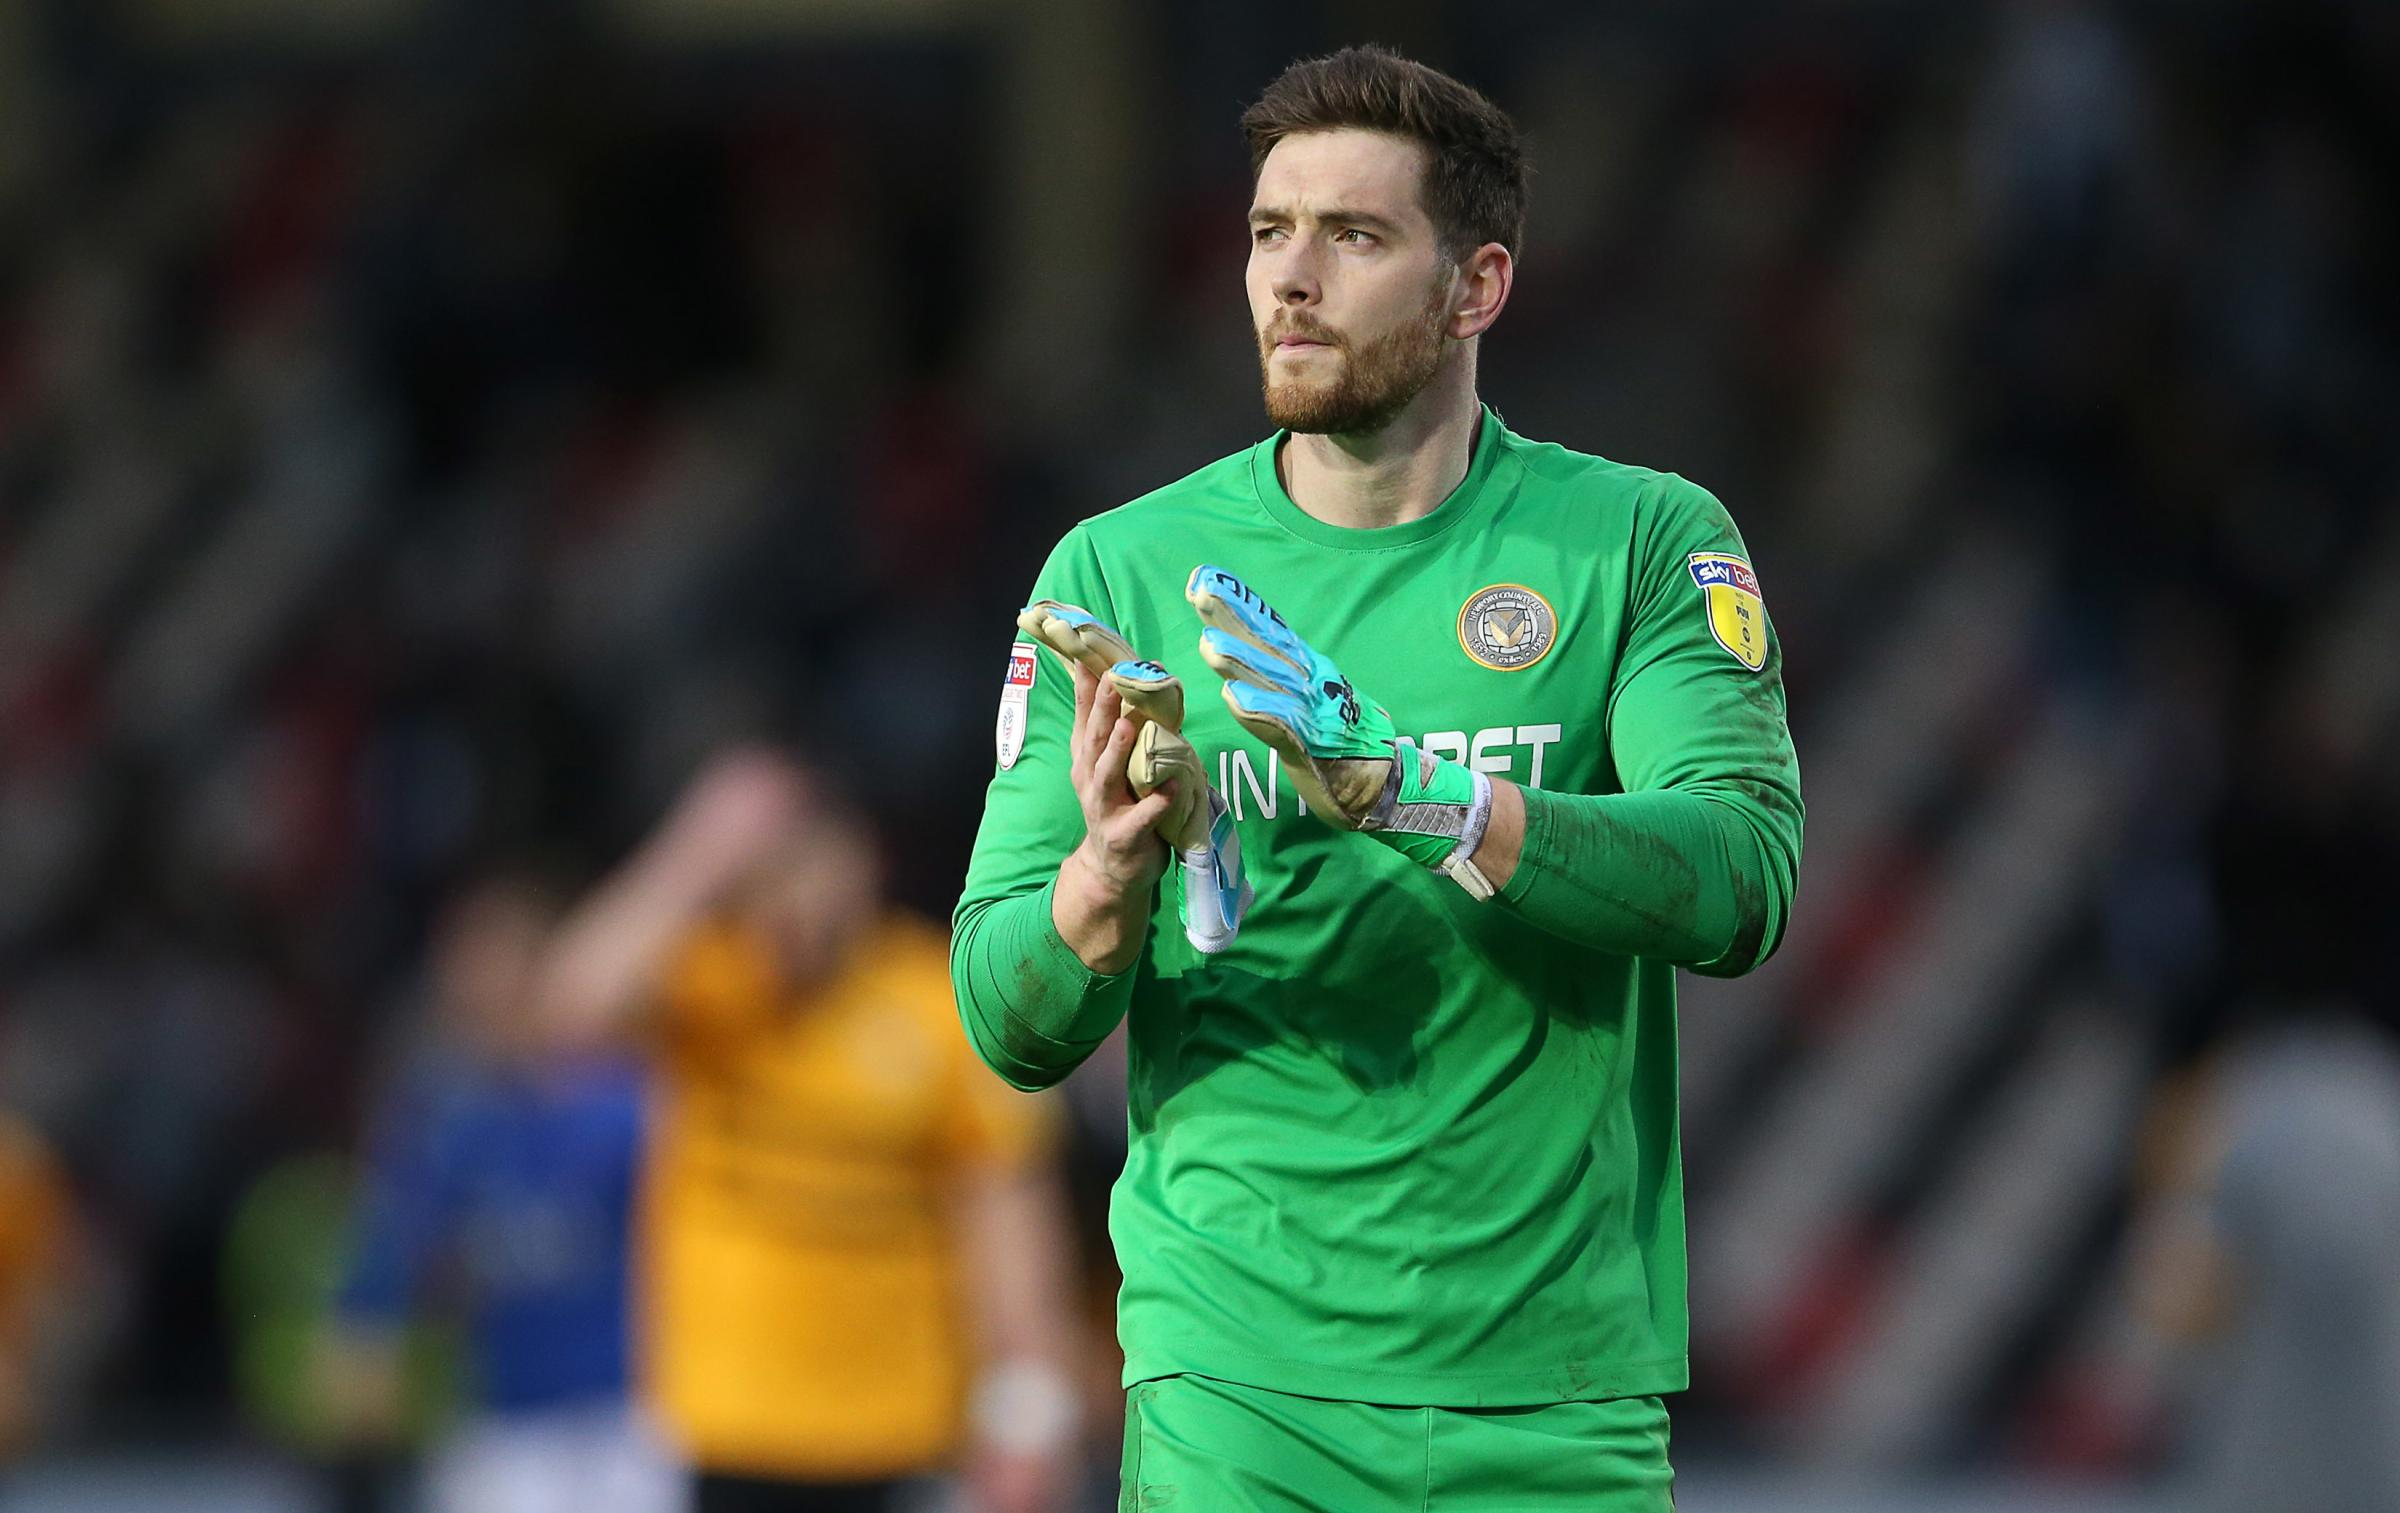 TALKS: League Two goalkeeper of the year Joe Day is one of 12 players out of contract at Newport County this summer